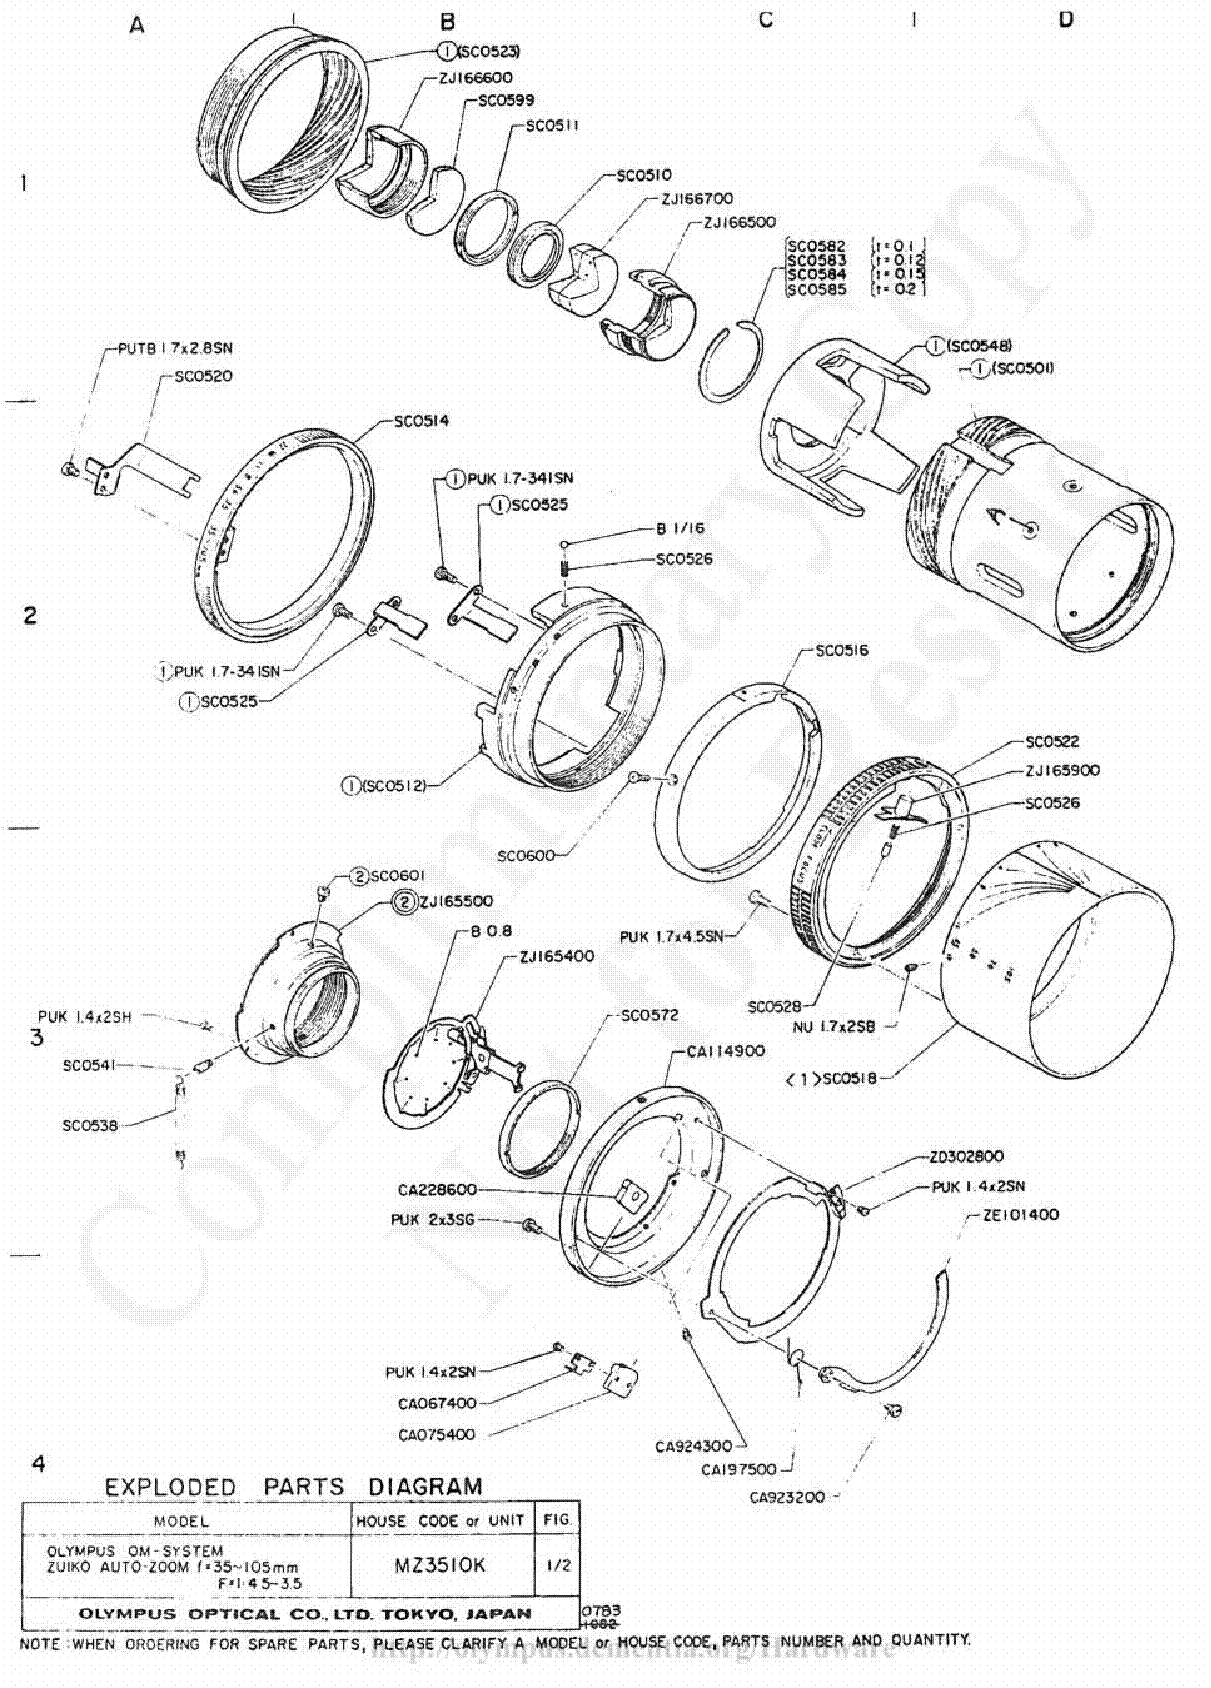 Olympus 18mm F3 5 Exploded Parts Diagram Service Manual